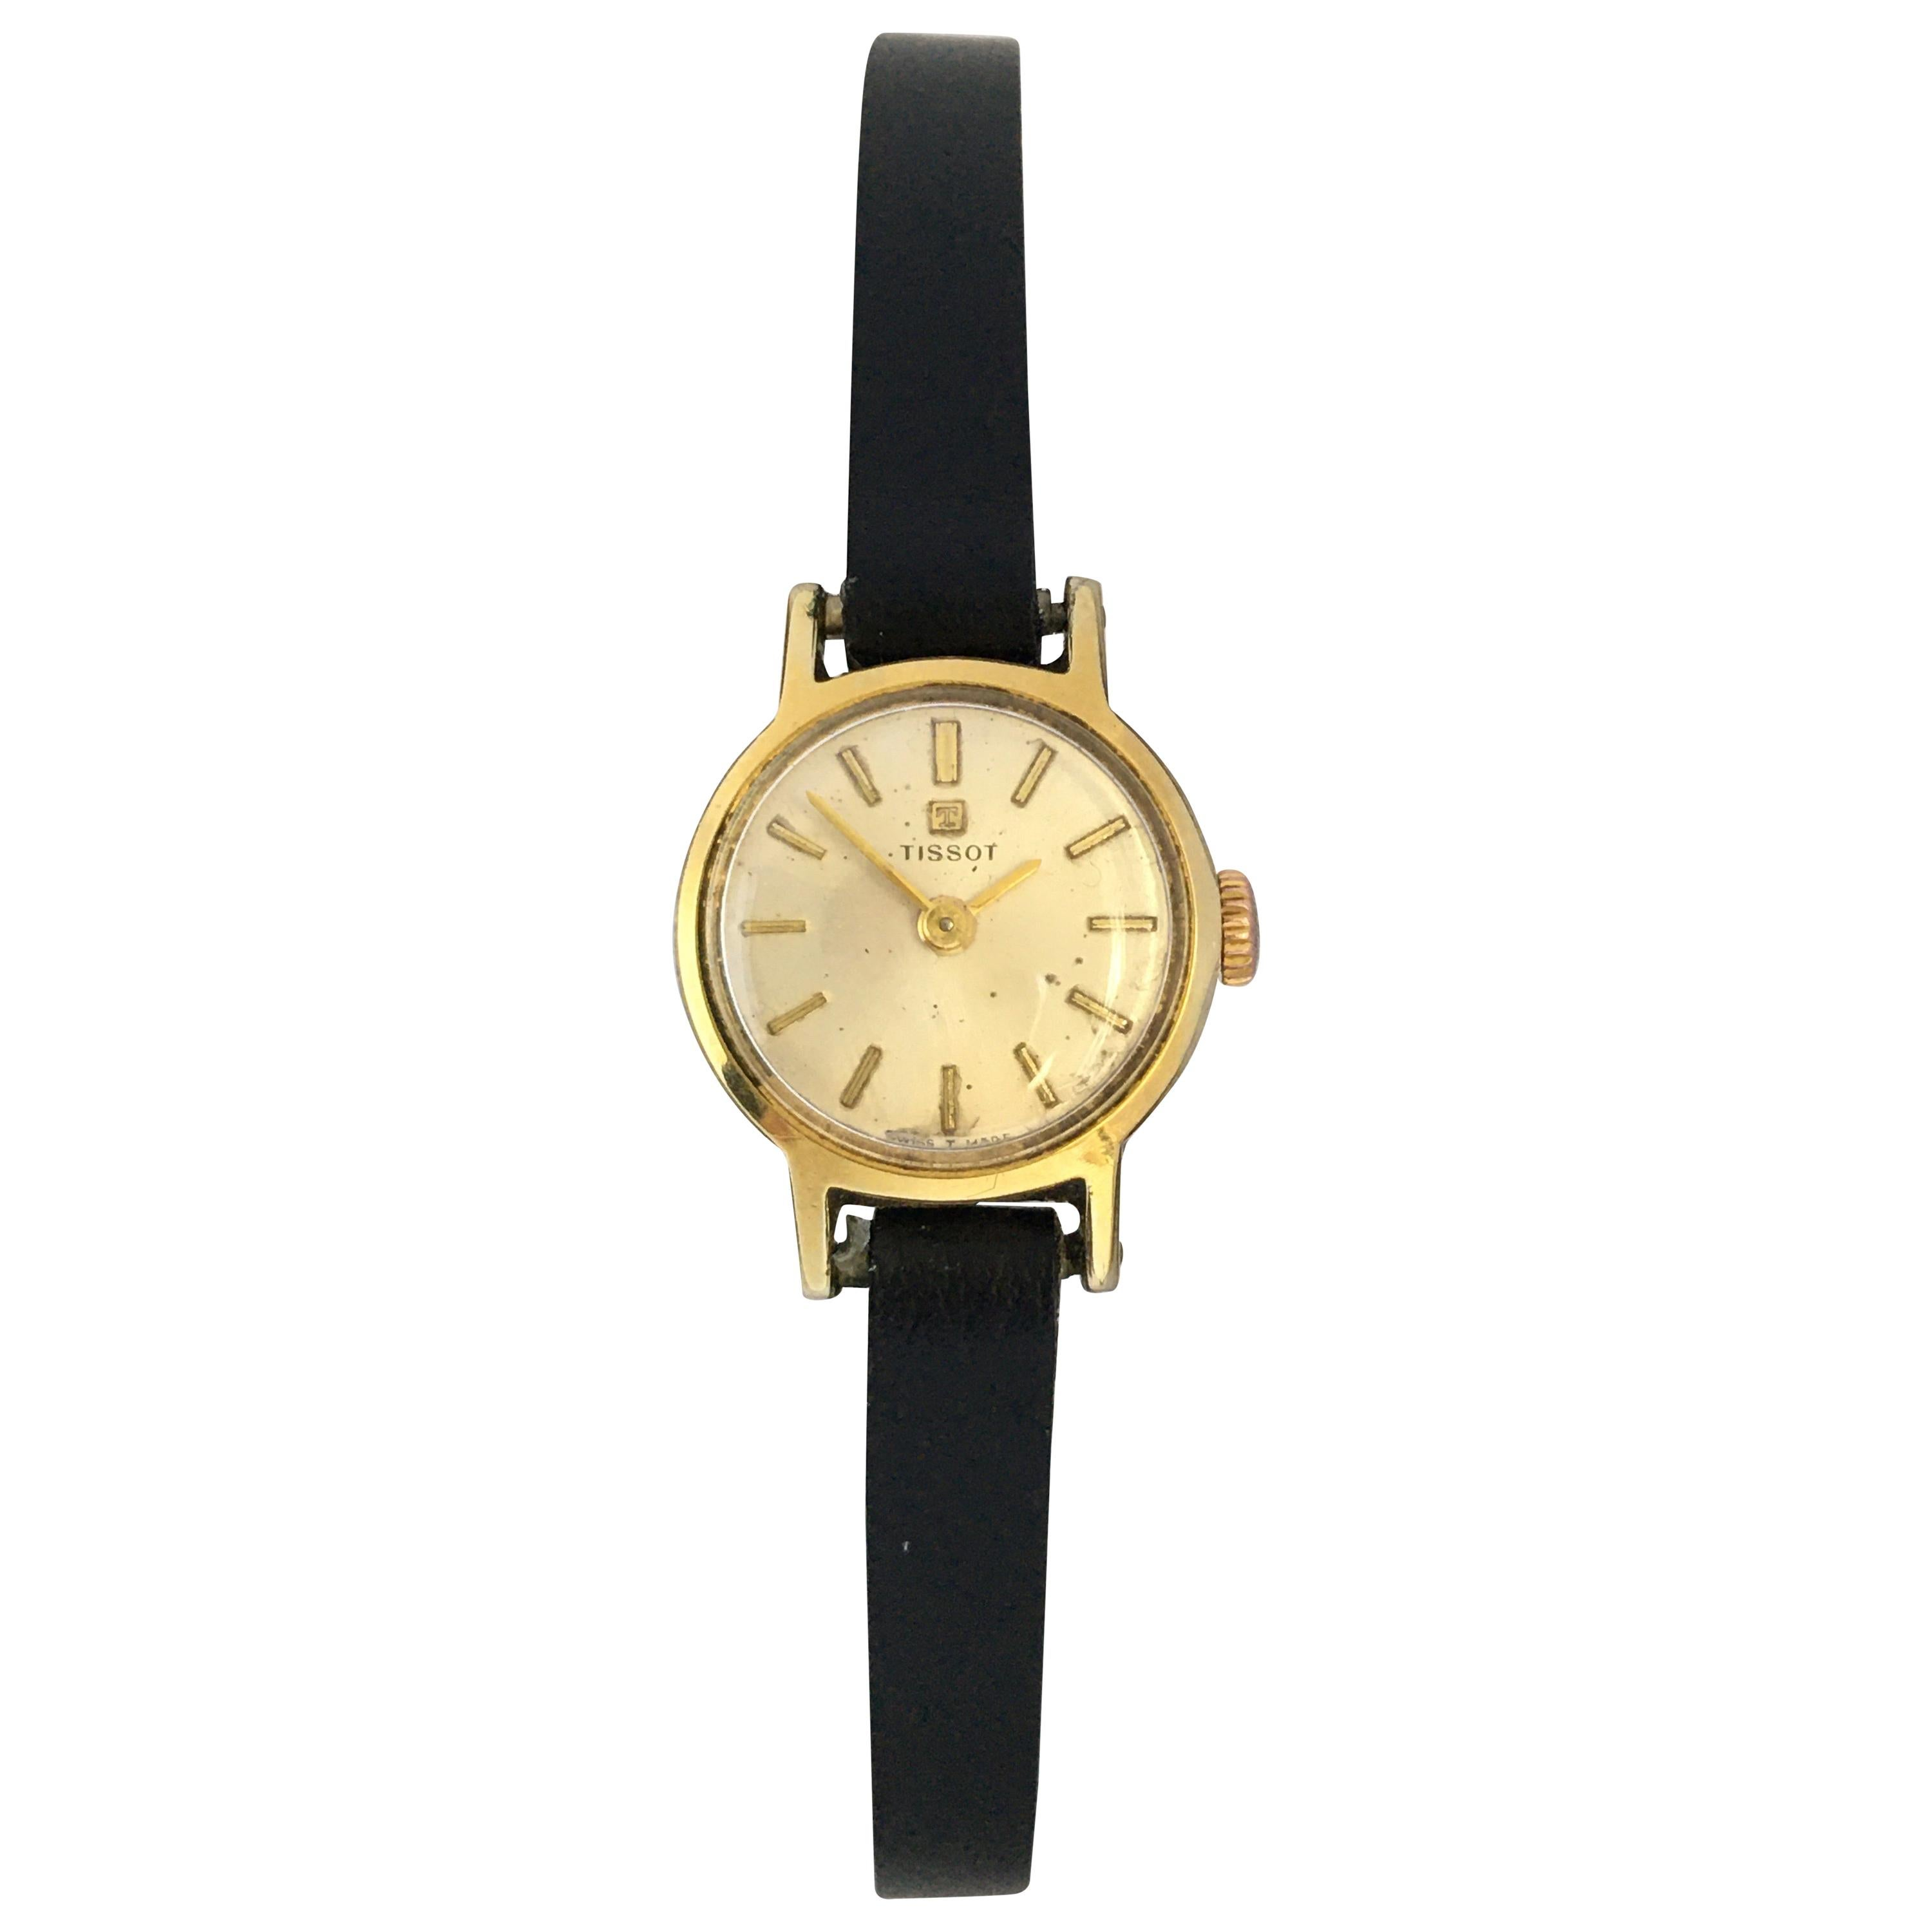 Vintage 1960s Gold-Plated and Stainless Steel TISSOT Ladies Mechanical Watch